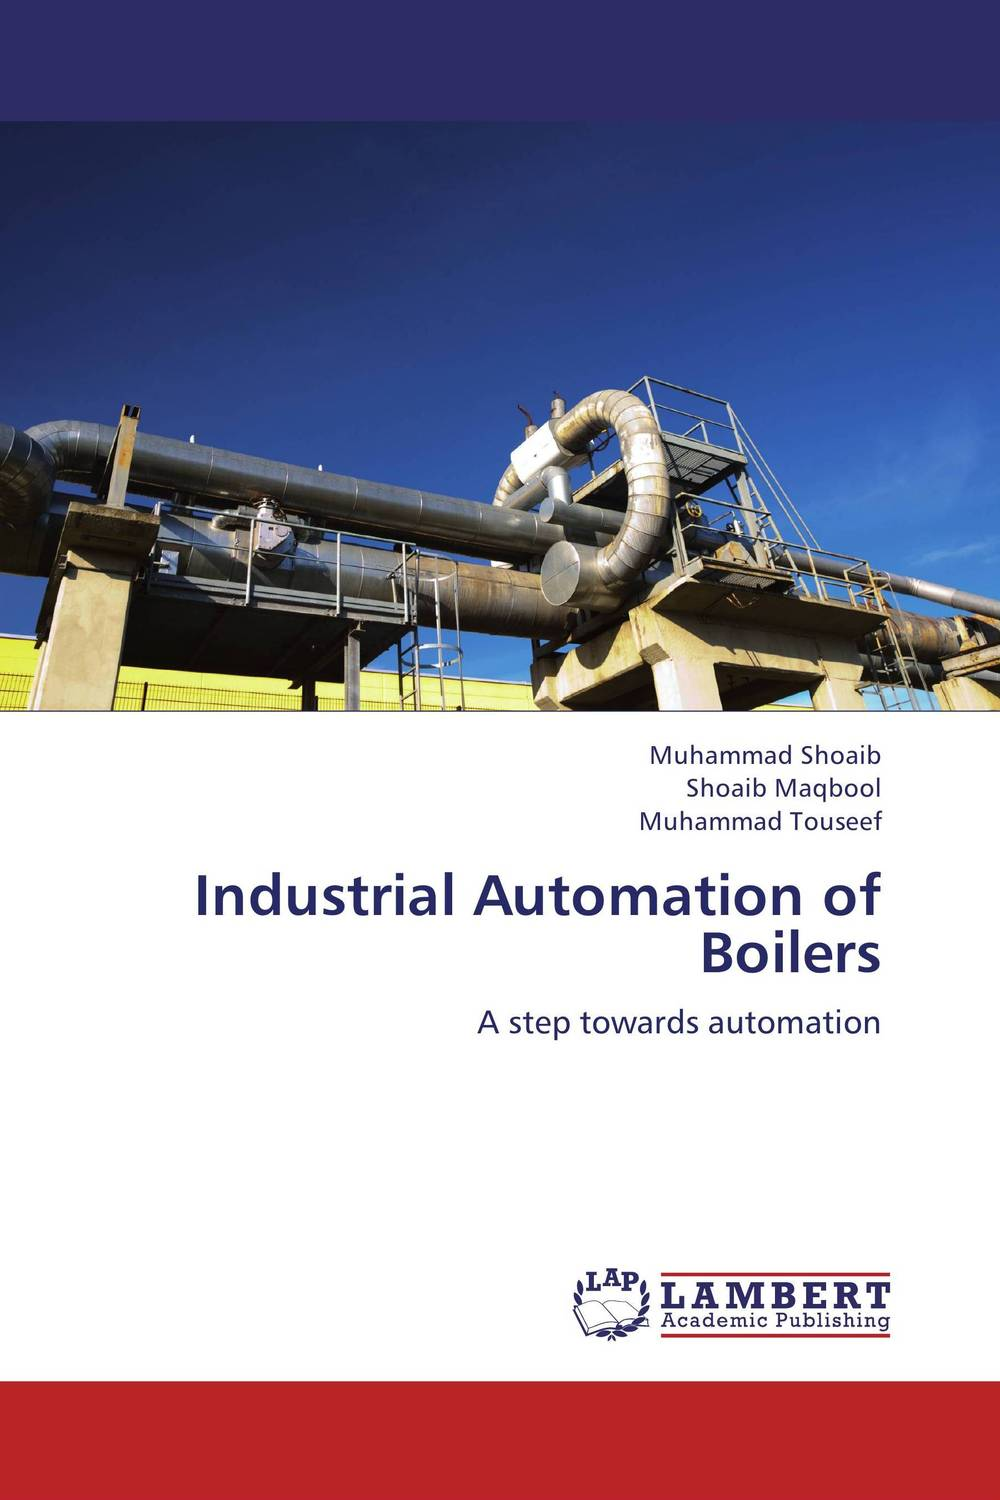 Industrial Automation of Boilers